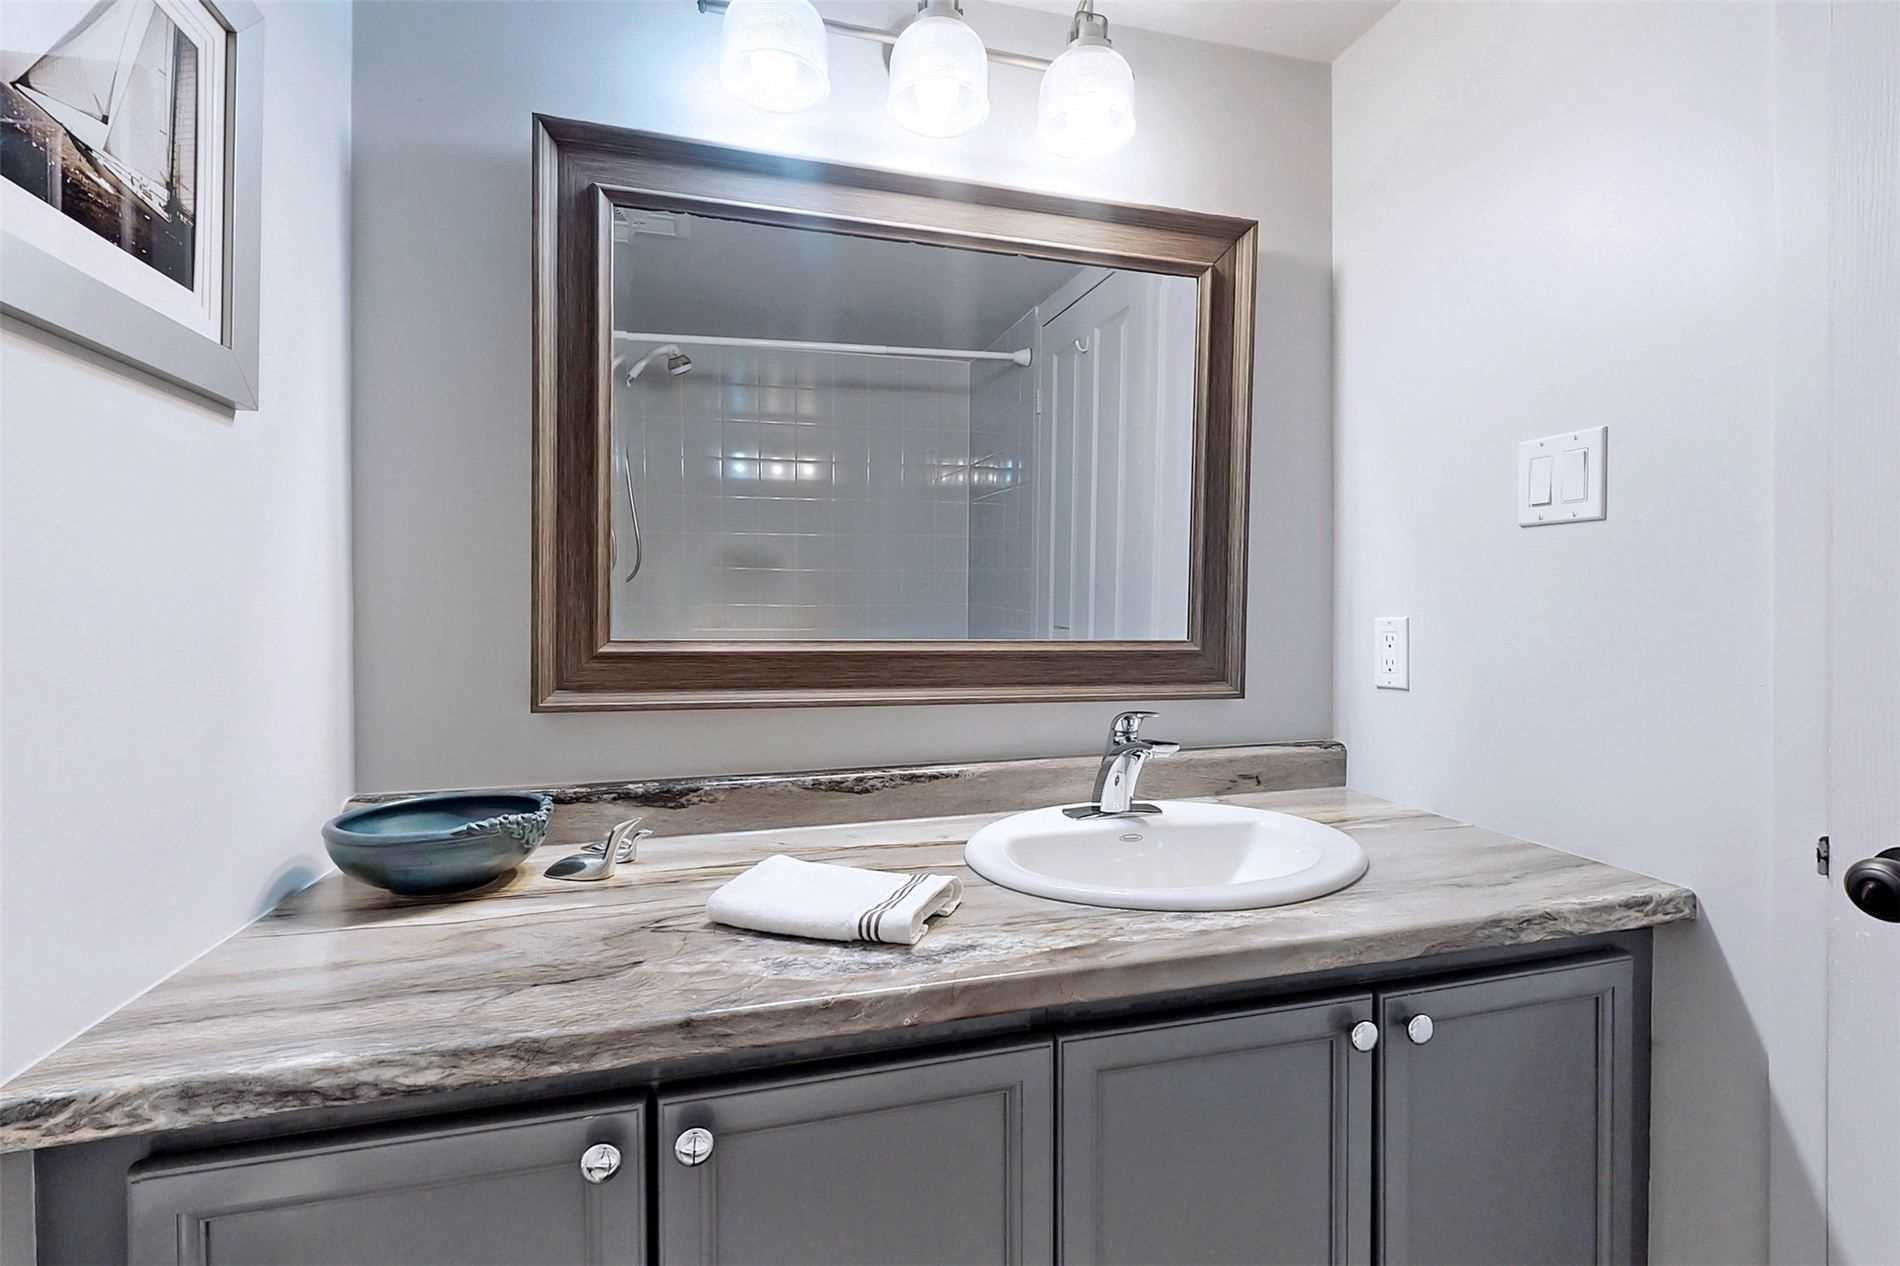 Image 17 of 40 showing inside of 2 Bedroom Condo Apt 2-Storey for Sale at 25 Cumberland Lane Unit# 105, Ajax L1S7K1